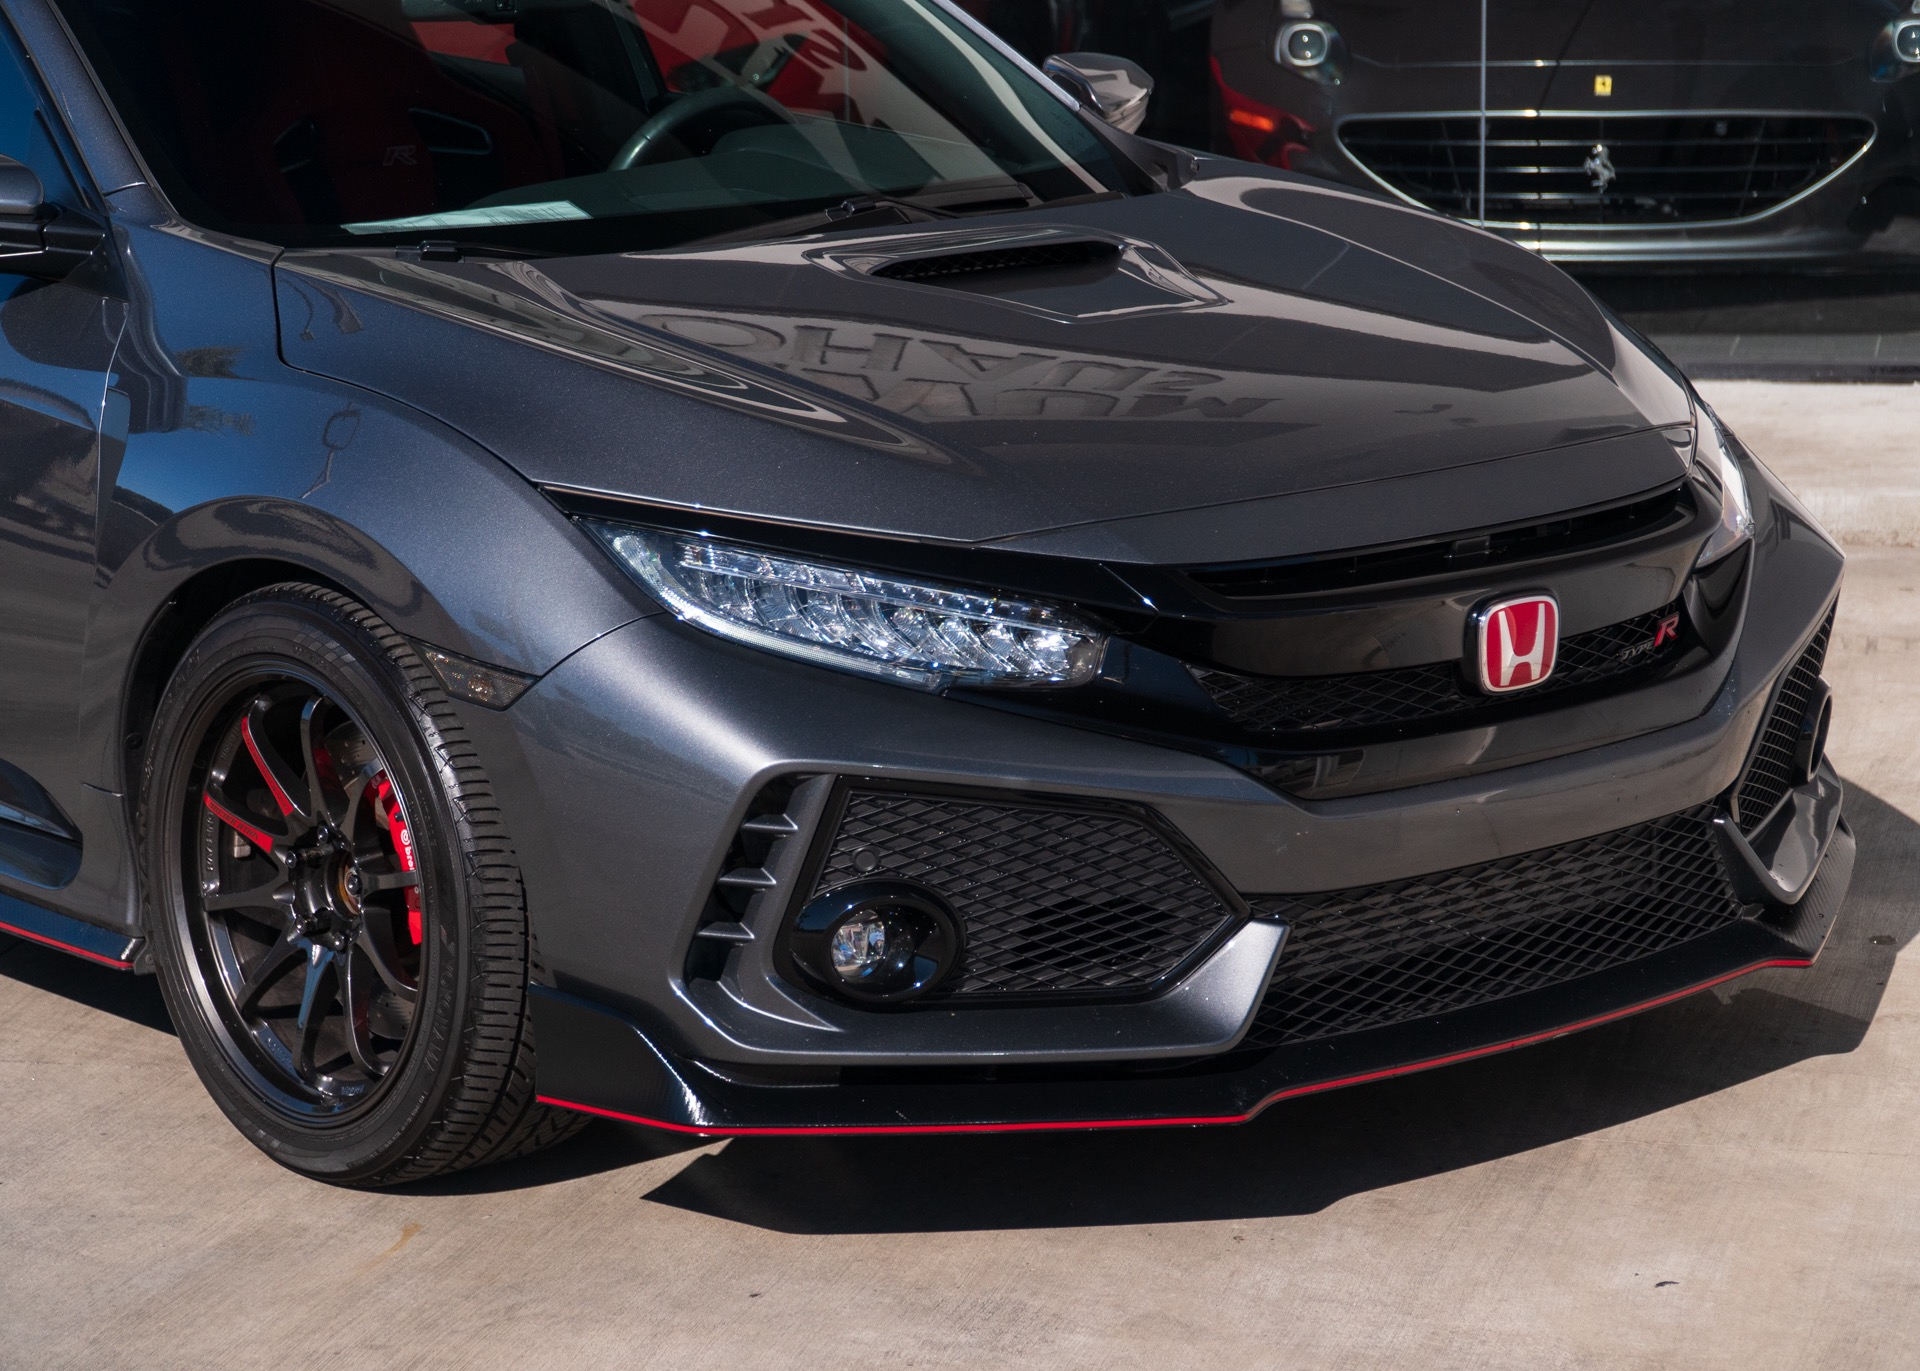 Used-2017-Honda-Civic-Type-R